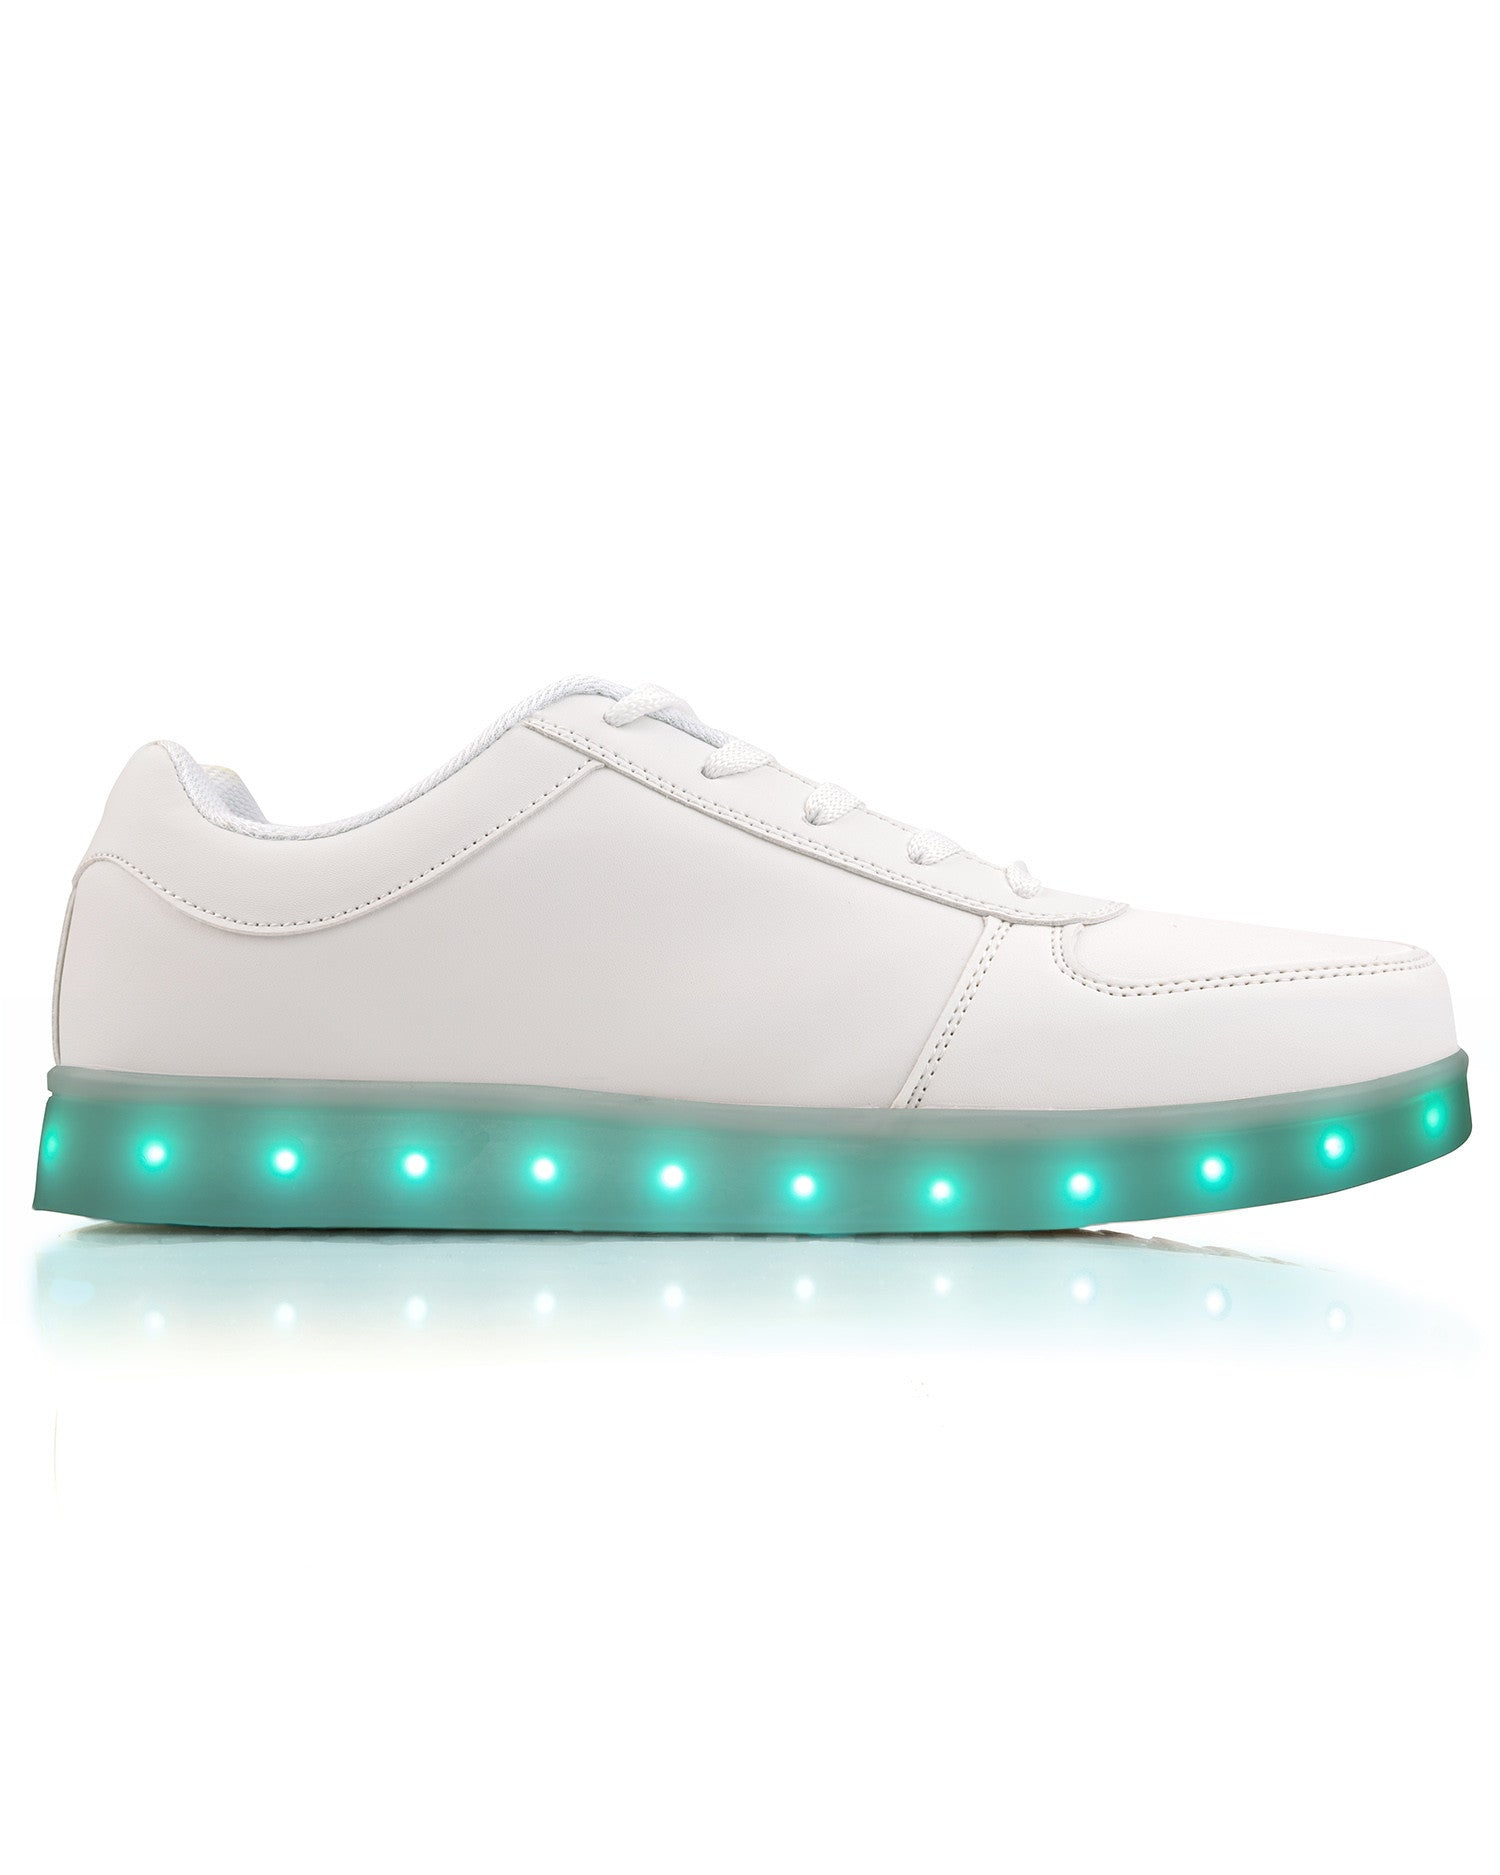 Electric Shoes - All Black - Electric Styles | World's Number 1 Light Up Shoe Store - {product_type}} - White / Men's 6 - 7